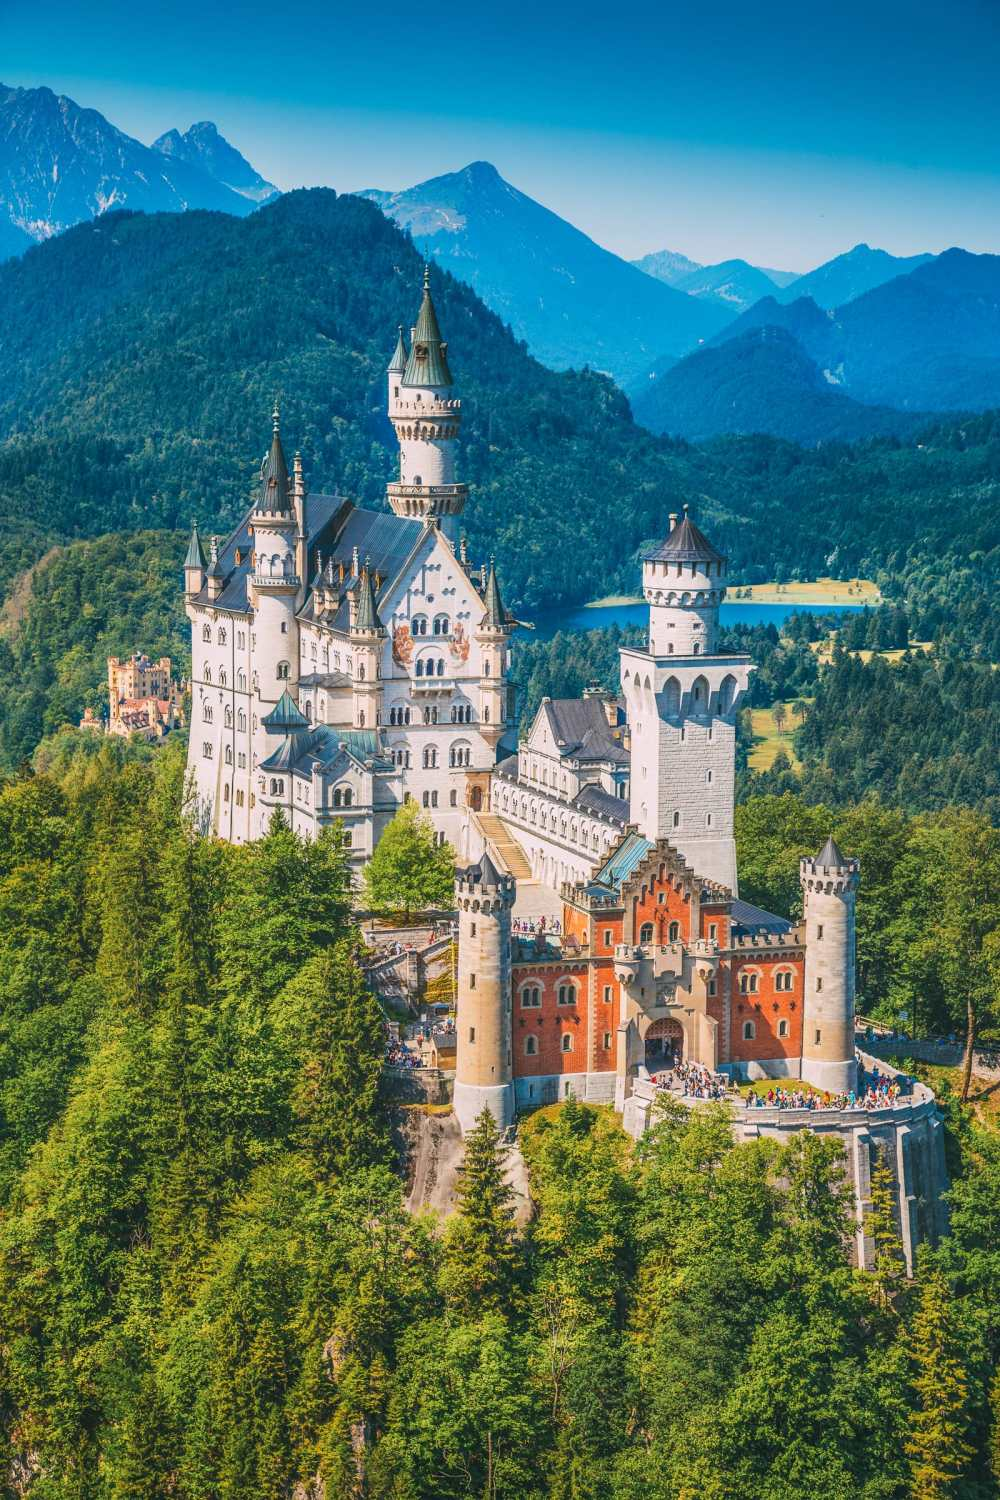 19 Fairytale Castles In Germany You Have To Visit (11)